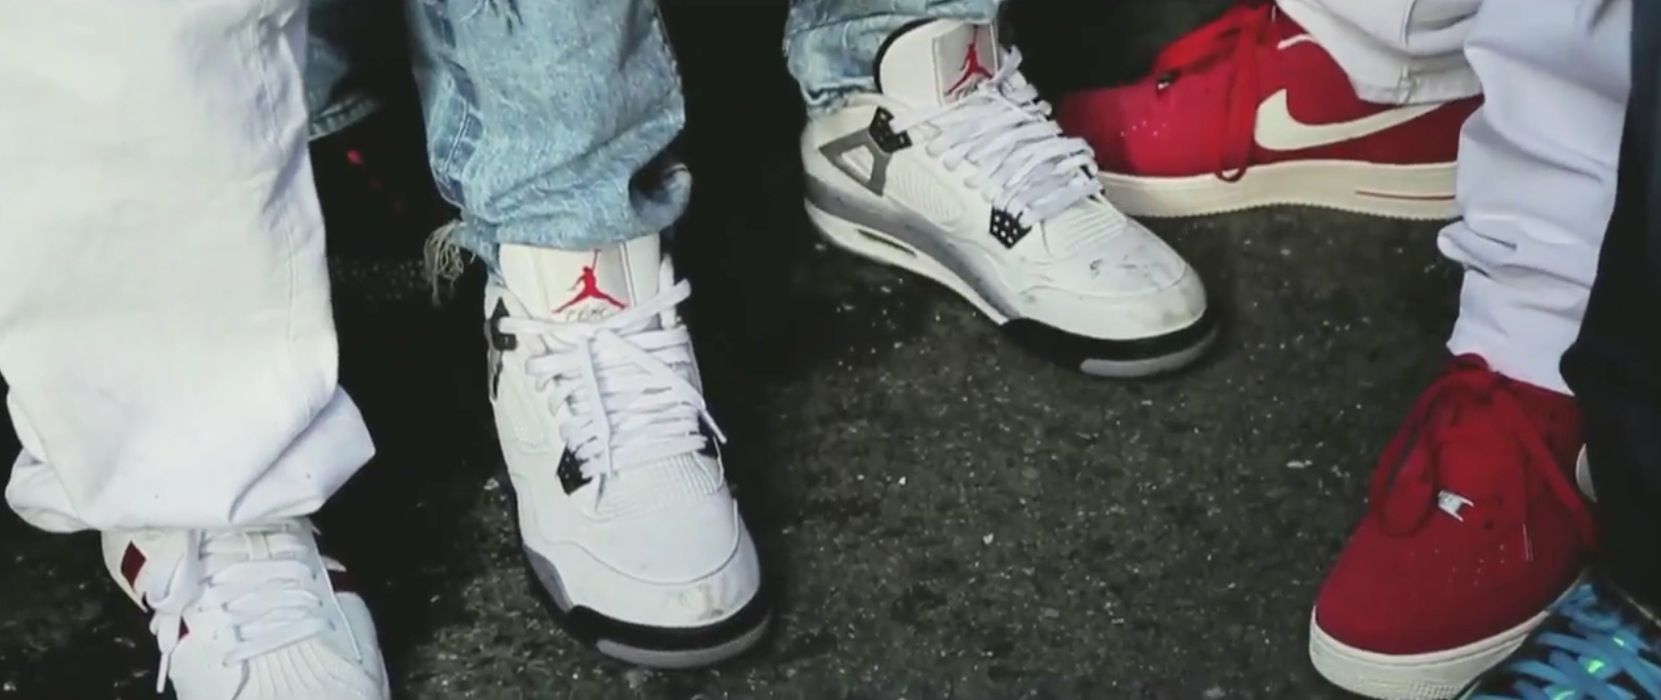 Air Jordan Iv White Cement Shoes, Nike Shoes And Adidas Shell Toe Shoes In  Maan